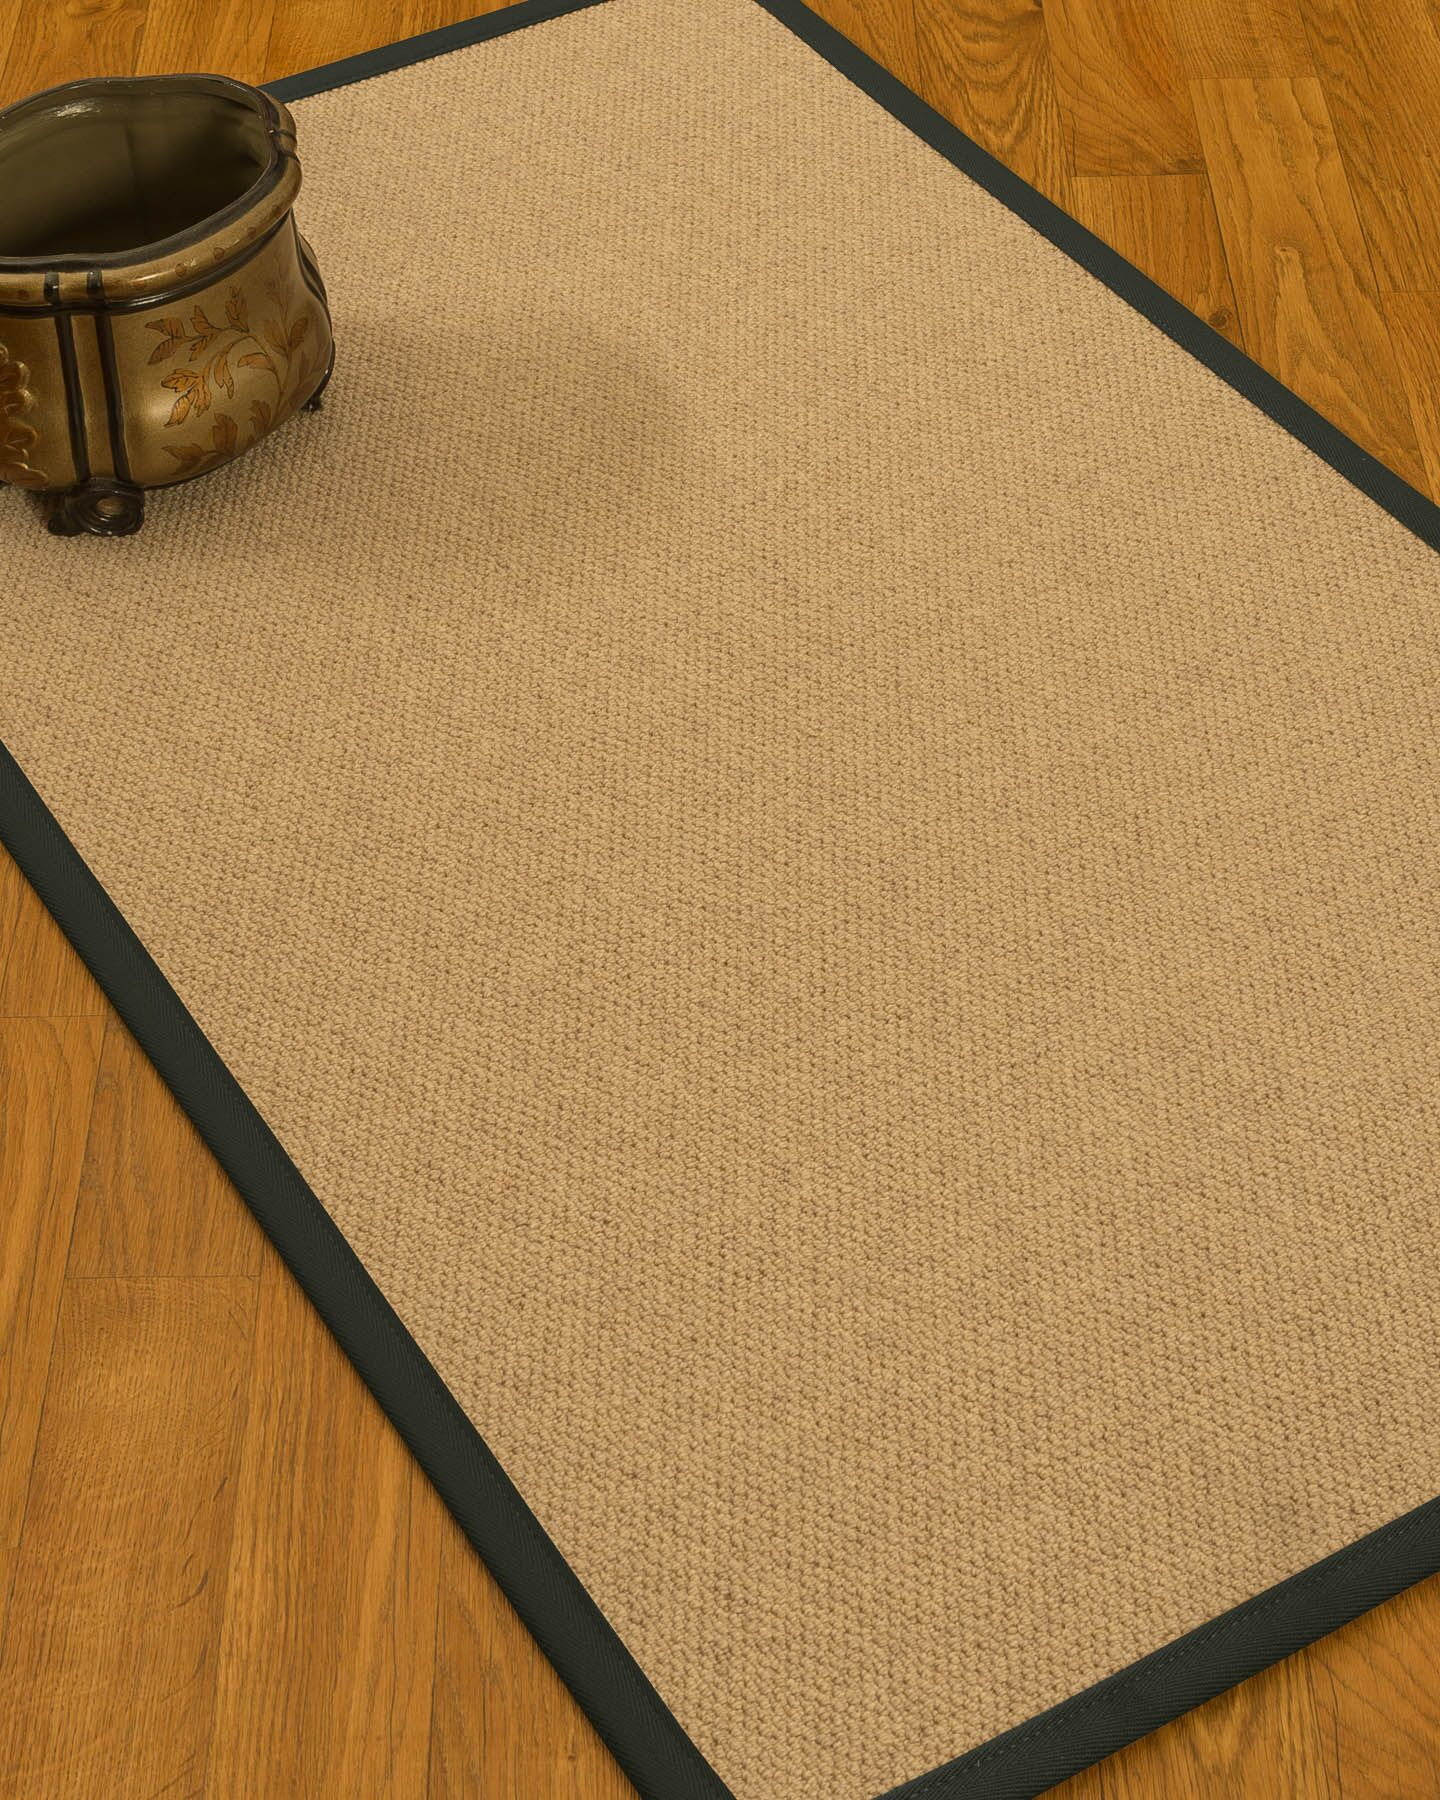 Chavira Border Hand-Woven Wool Beige/Metal Area Rug Rug Size: Rectangle 9' x 12', Rug Pad Included: Yes